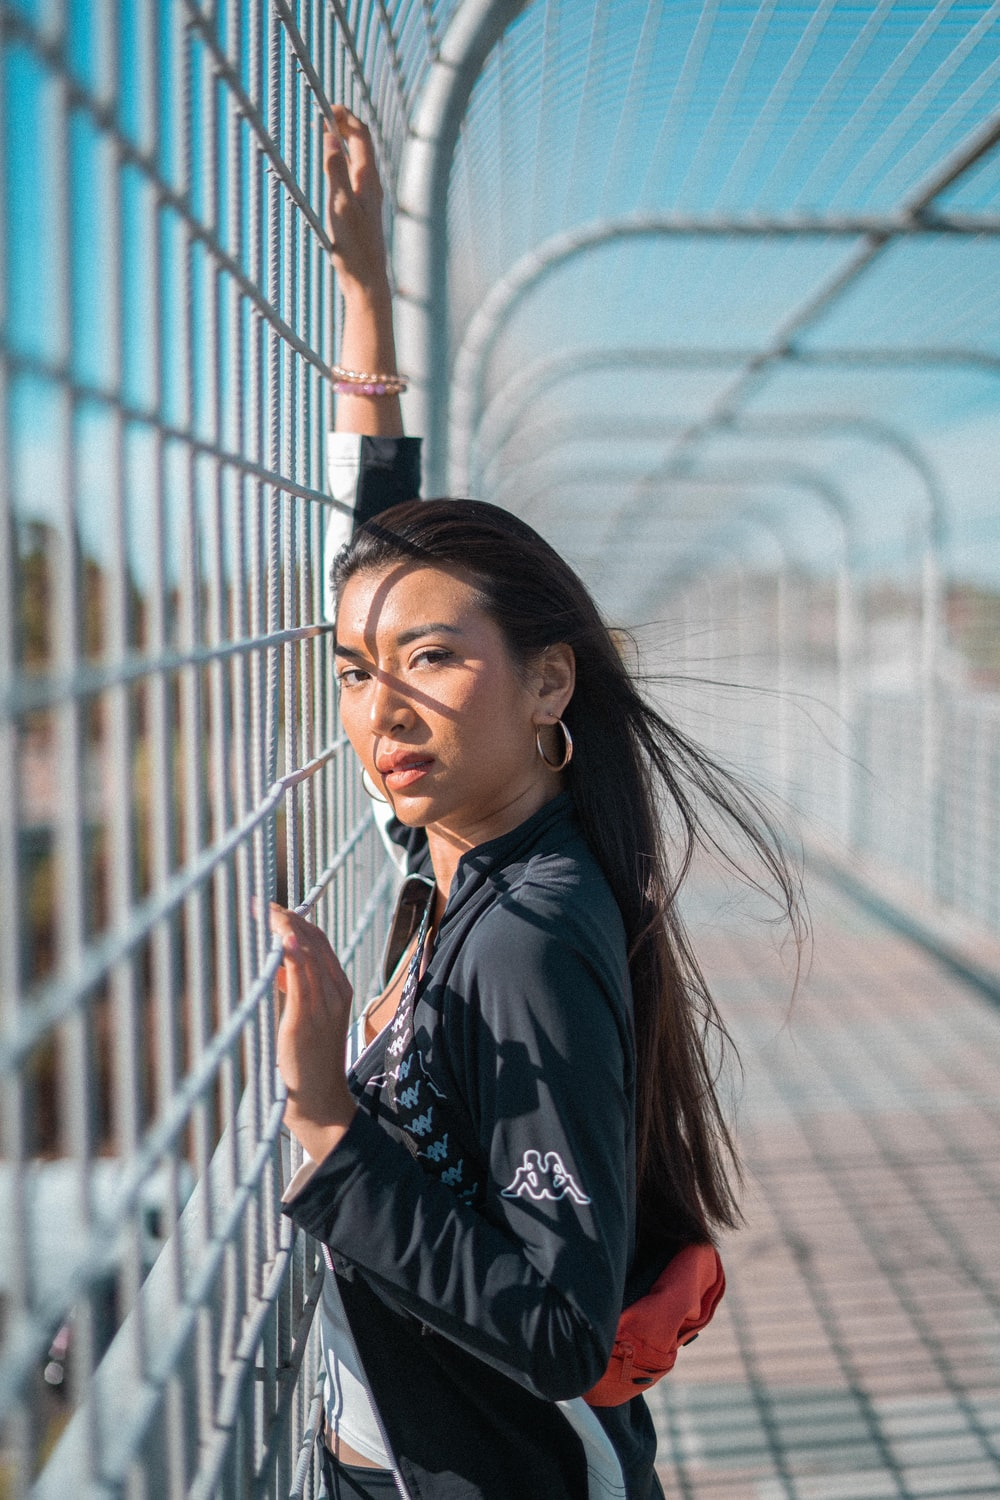 selective focus photography of woman standing in front of chain fence